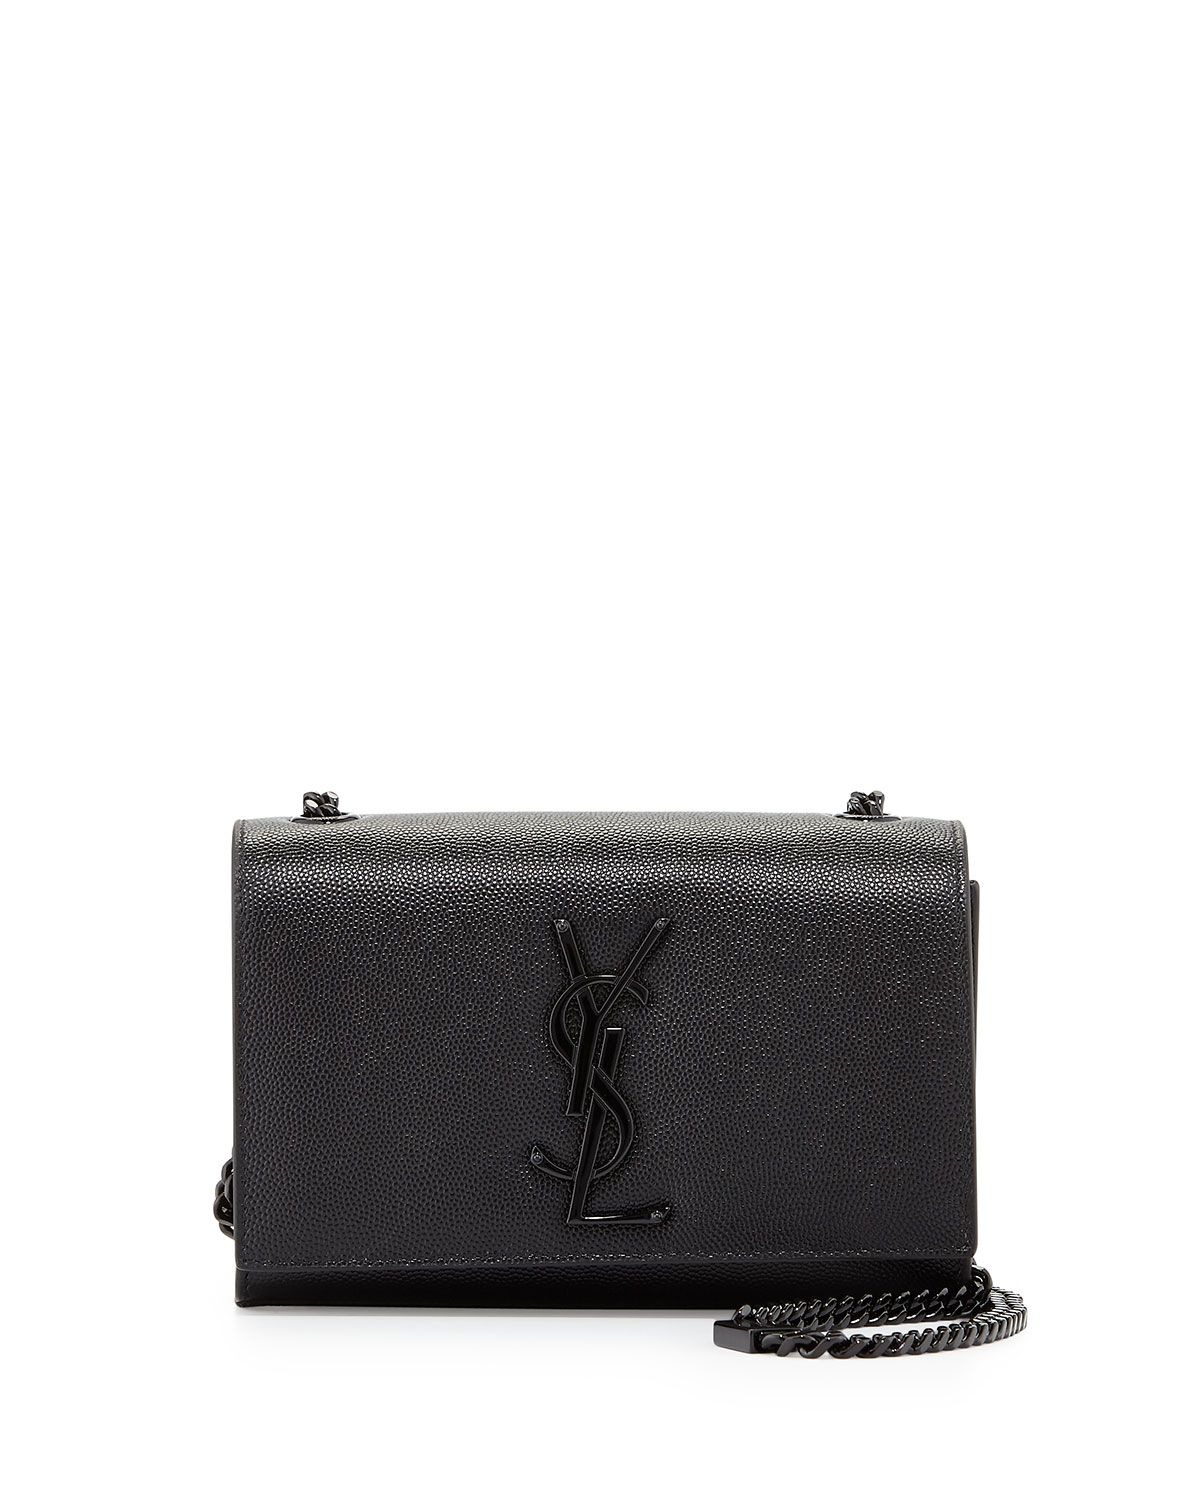 b846b364301 Yves Saint Laurent Kate Monogram Small Shoulder Bag